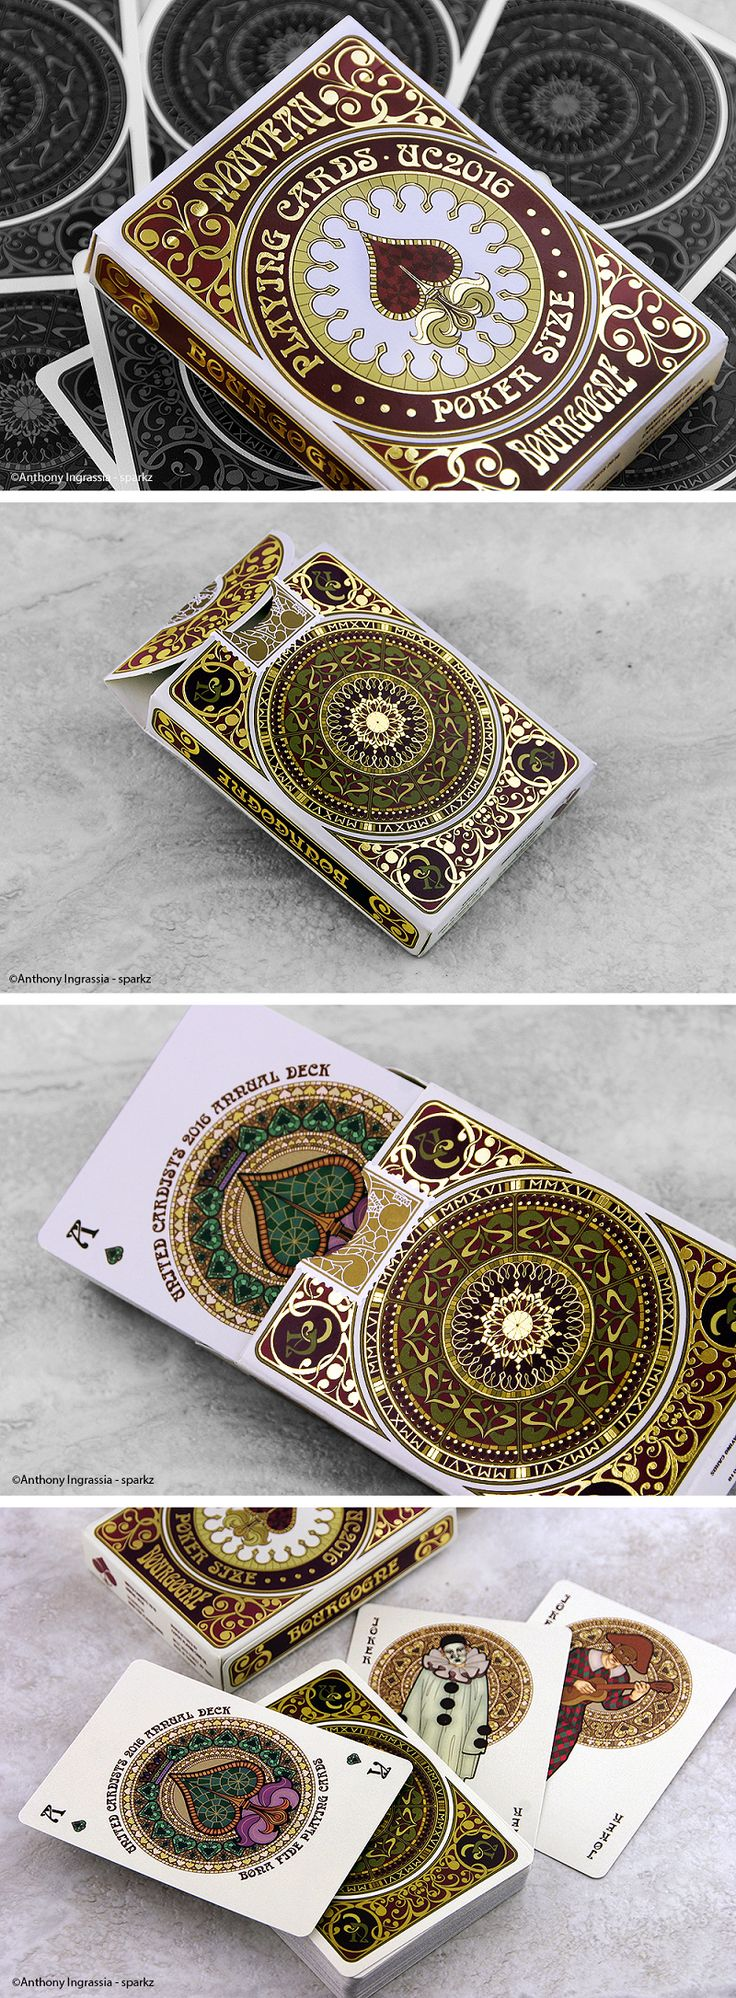 Nice Shots of our Nouveau BOURGOGNE Playing Cards by @sparkzphoto - playing cards art, game, playing cards collection, playing cards project, cards collectors, design, illustration, card game, game, cards, cardist, cardistry